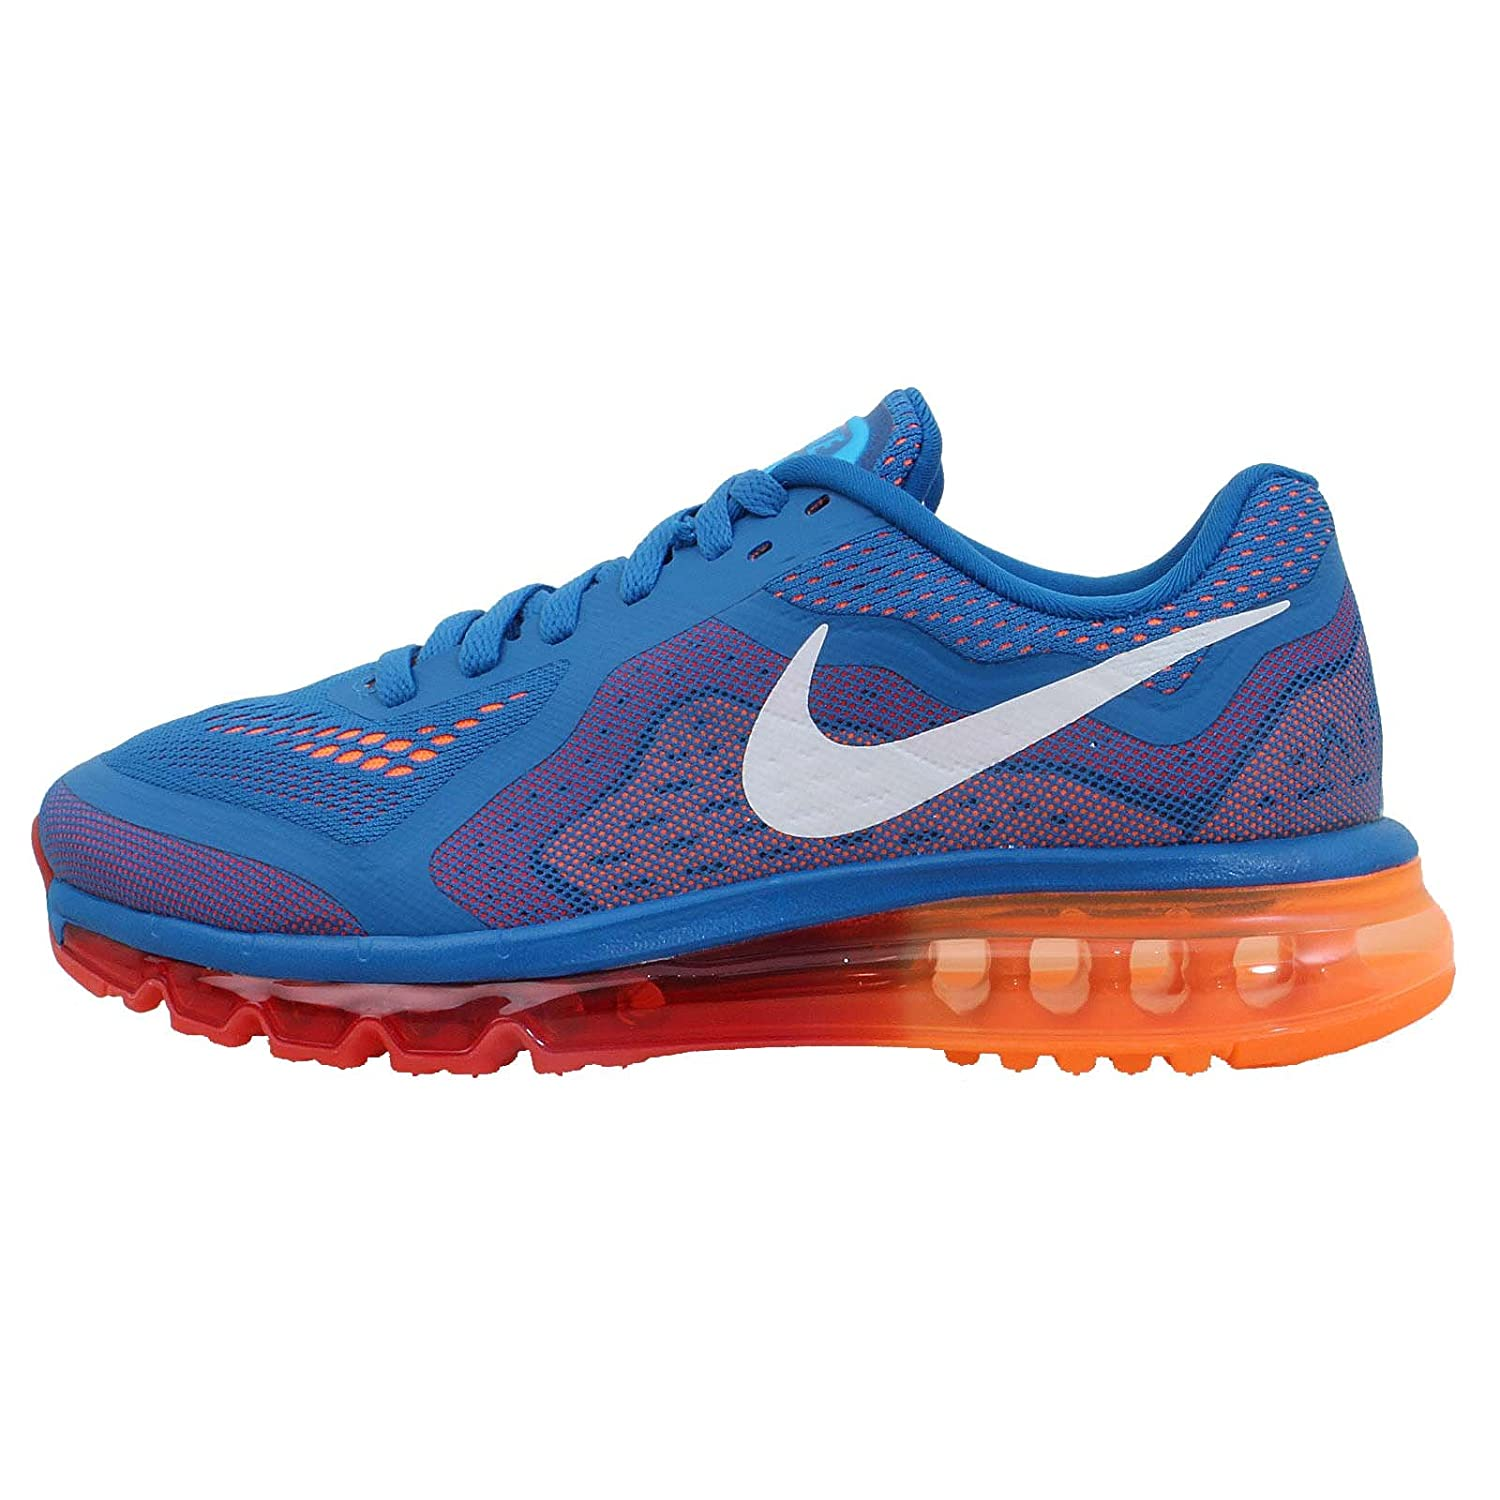 Synthetic Nike Blue Air Mesh amp; 2014 621077 Men's Shoes Max Running CqCrxw70